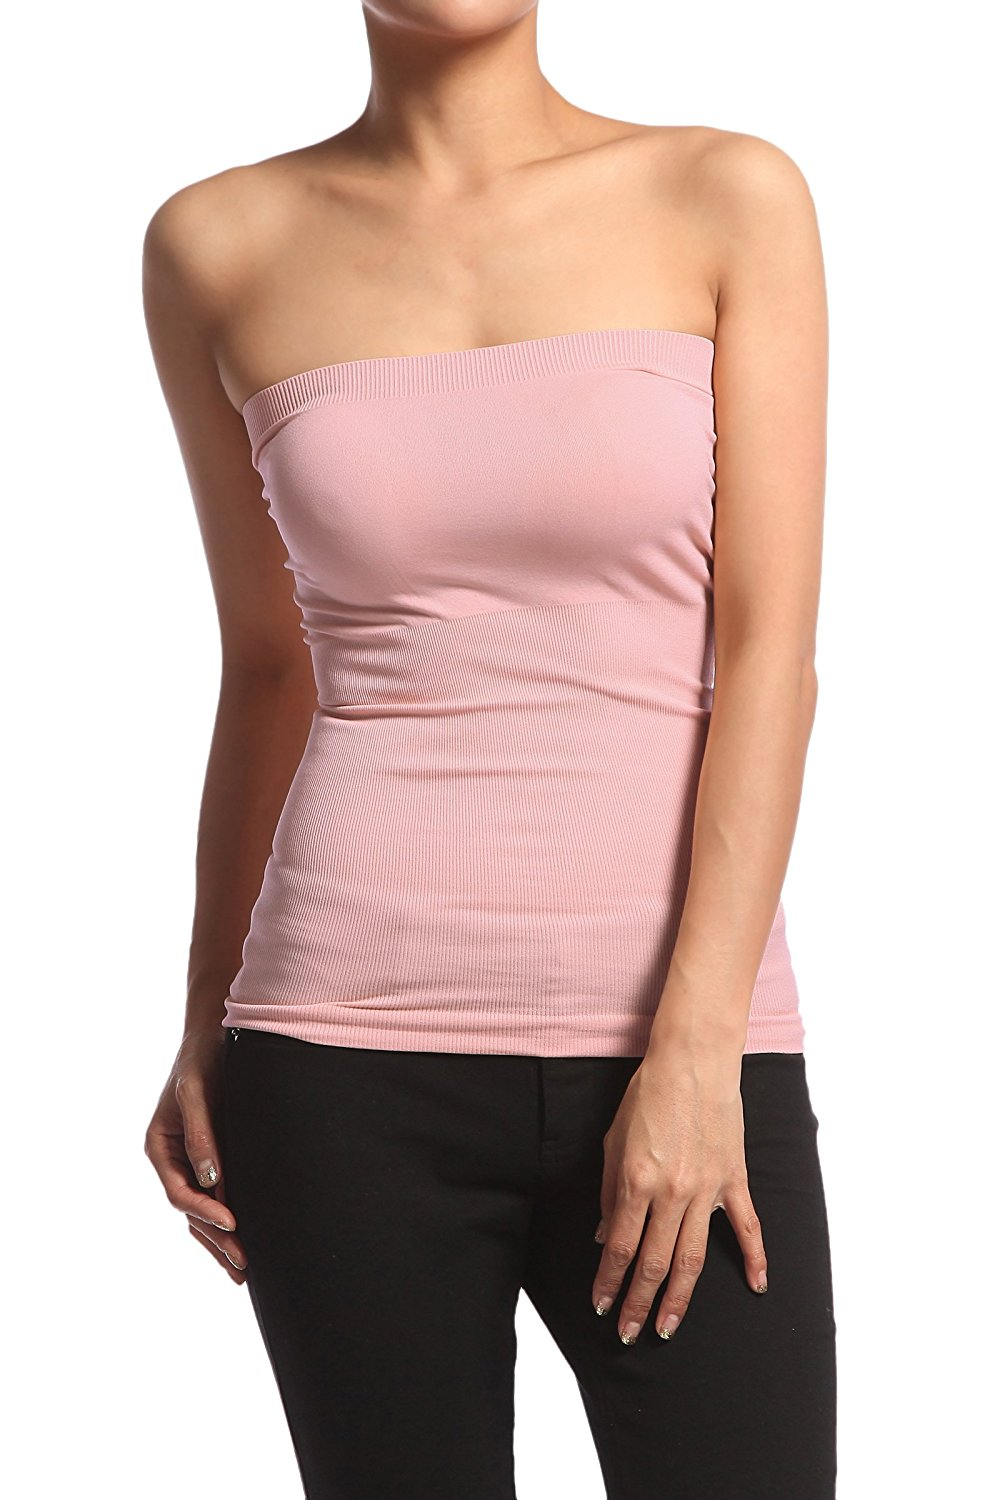 432b583ded Get Quotations · TheMogan Seamless Strapless Bandeau Tube Top Shaping  Ribbed Waist Tank